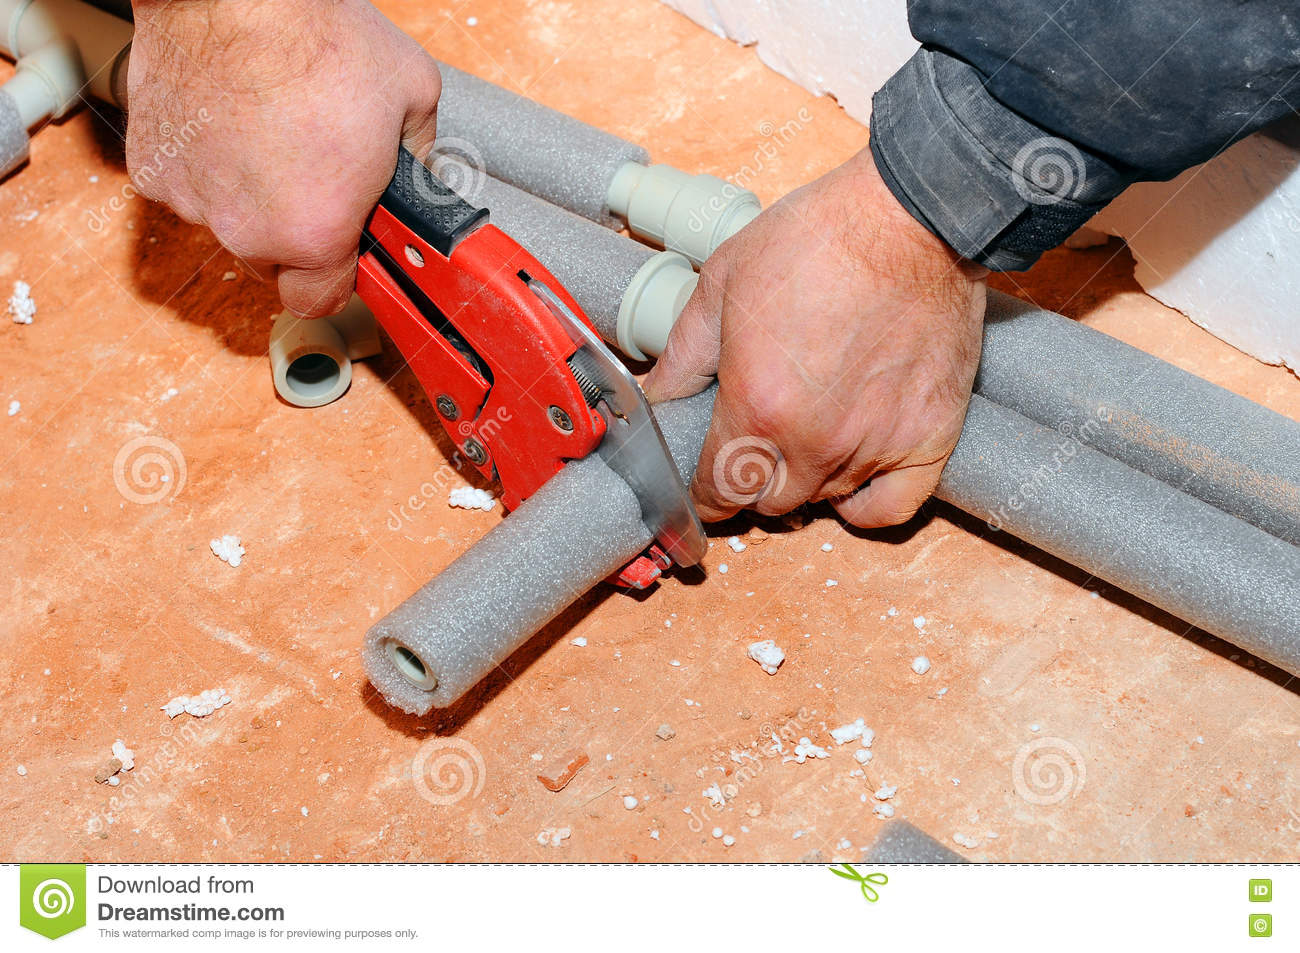 Plumber worker with scissors cuts the tube. cutting metal-plastic pipe by special red scissors. Plumber hands working